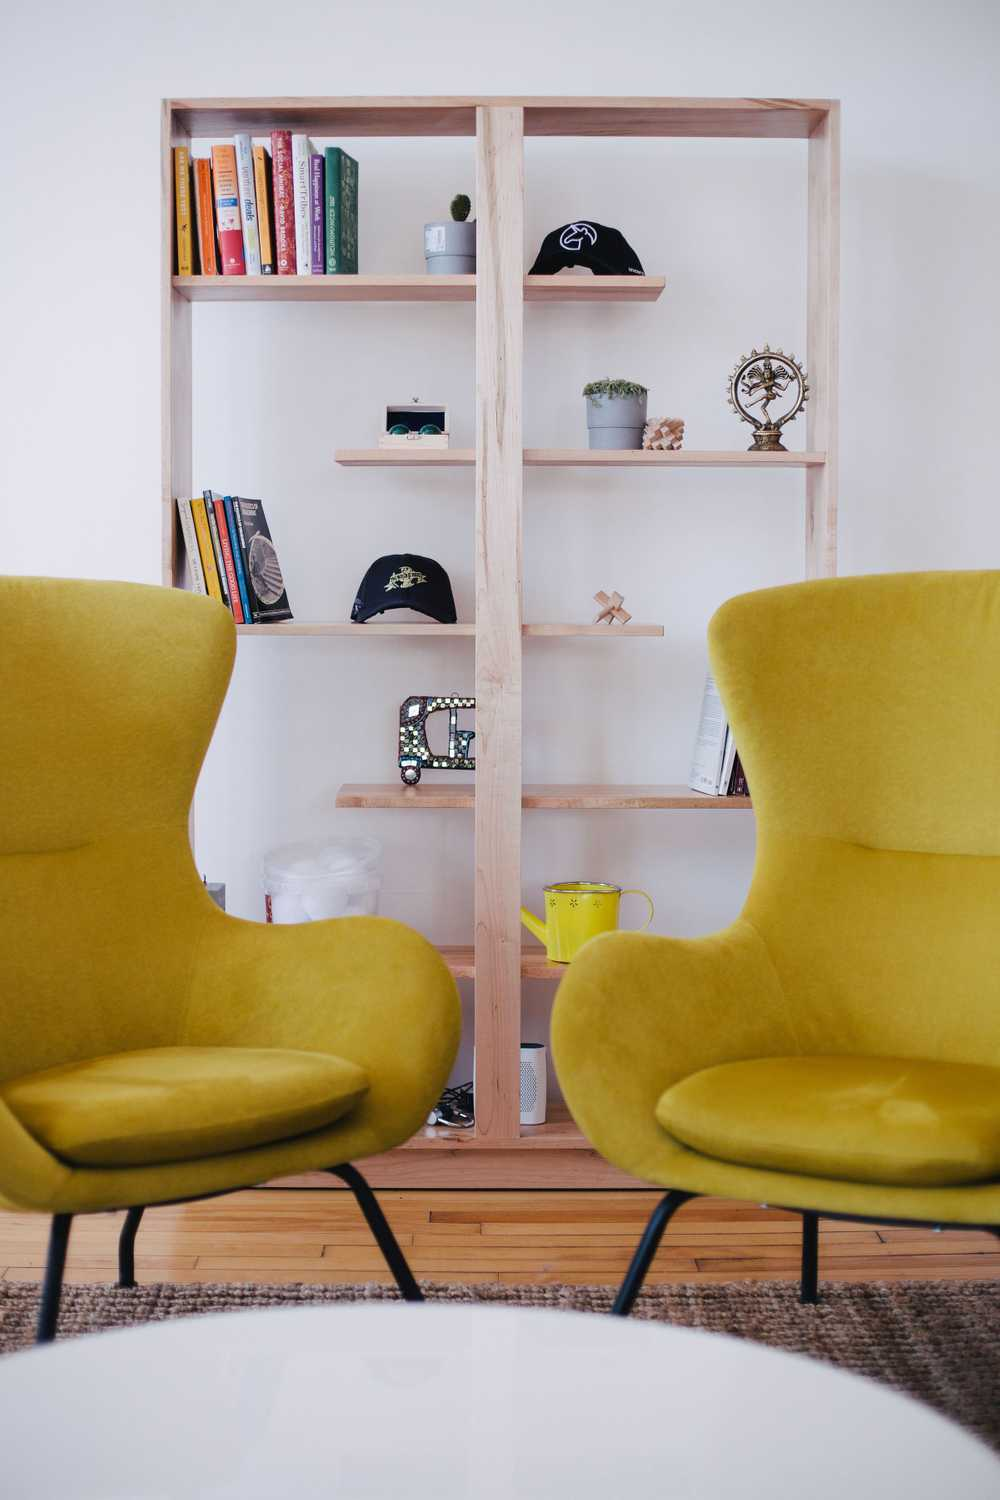 two yellow chairs near brown shelf